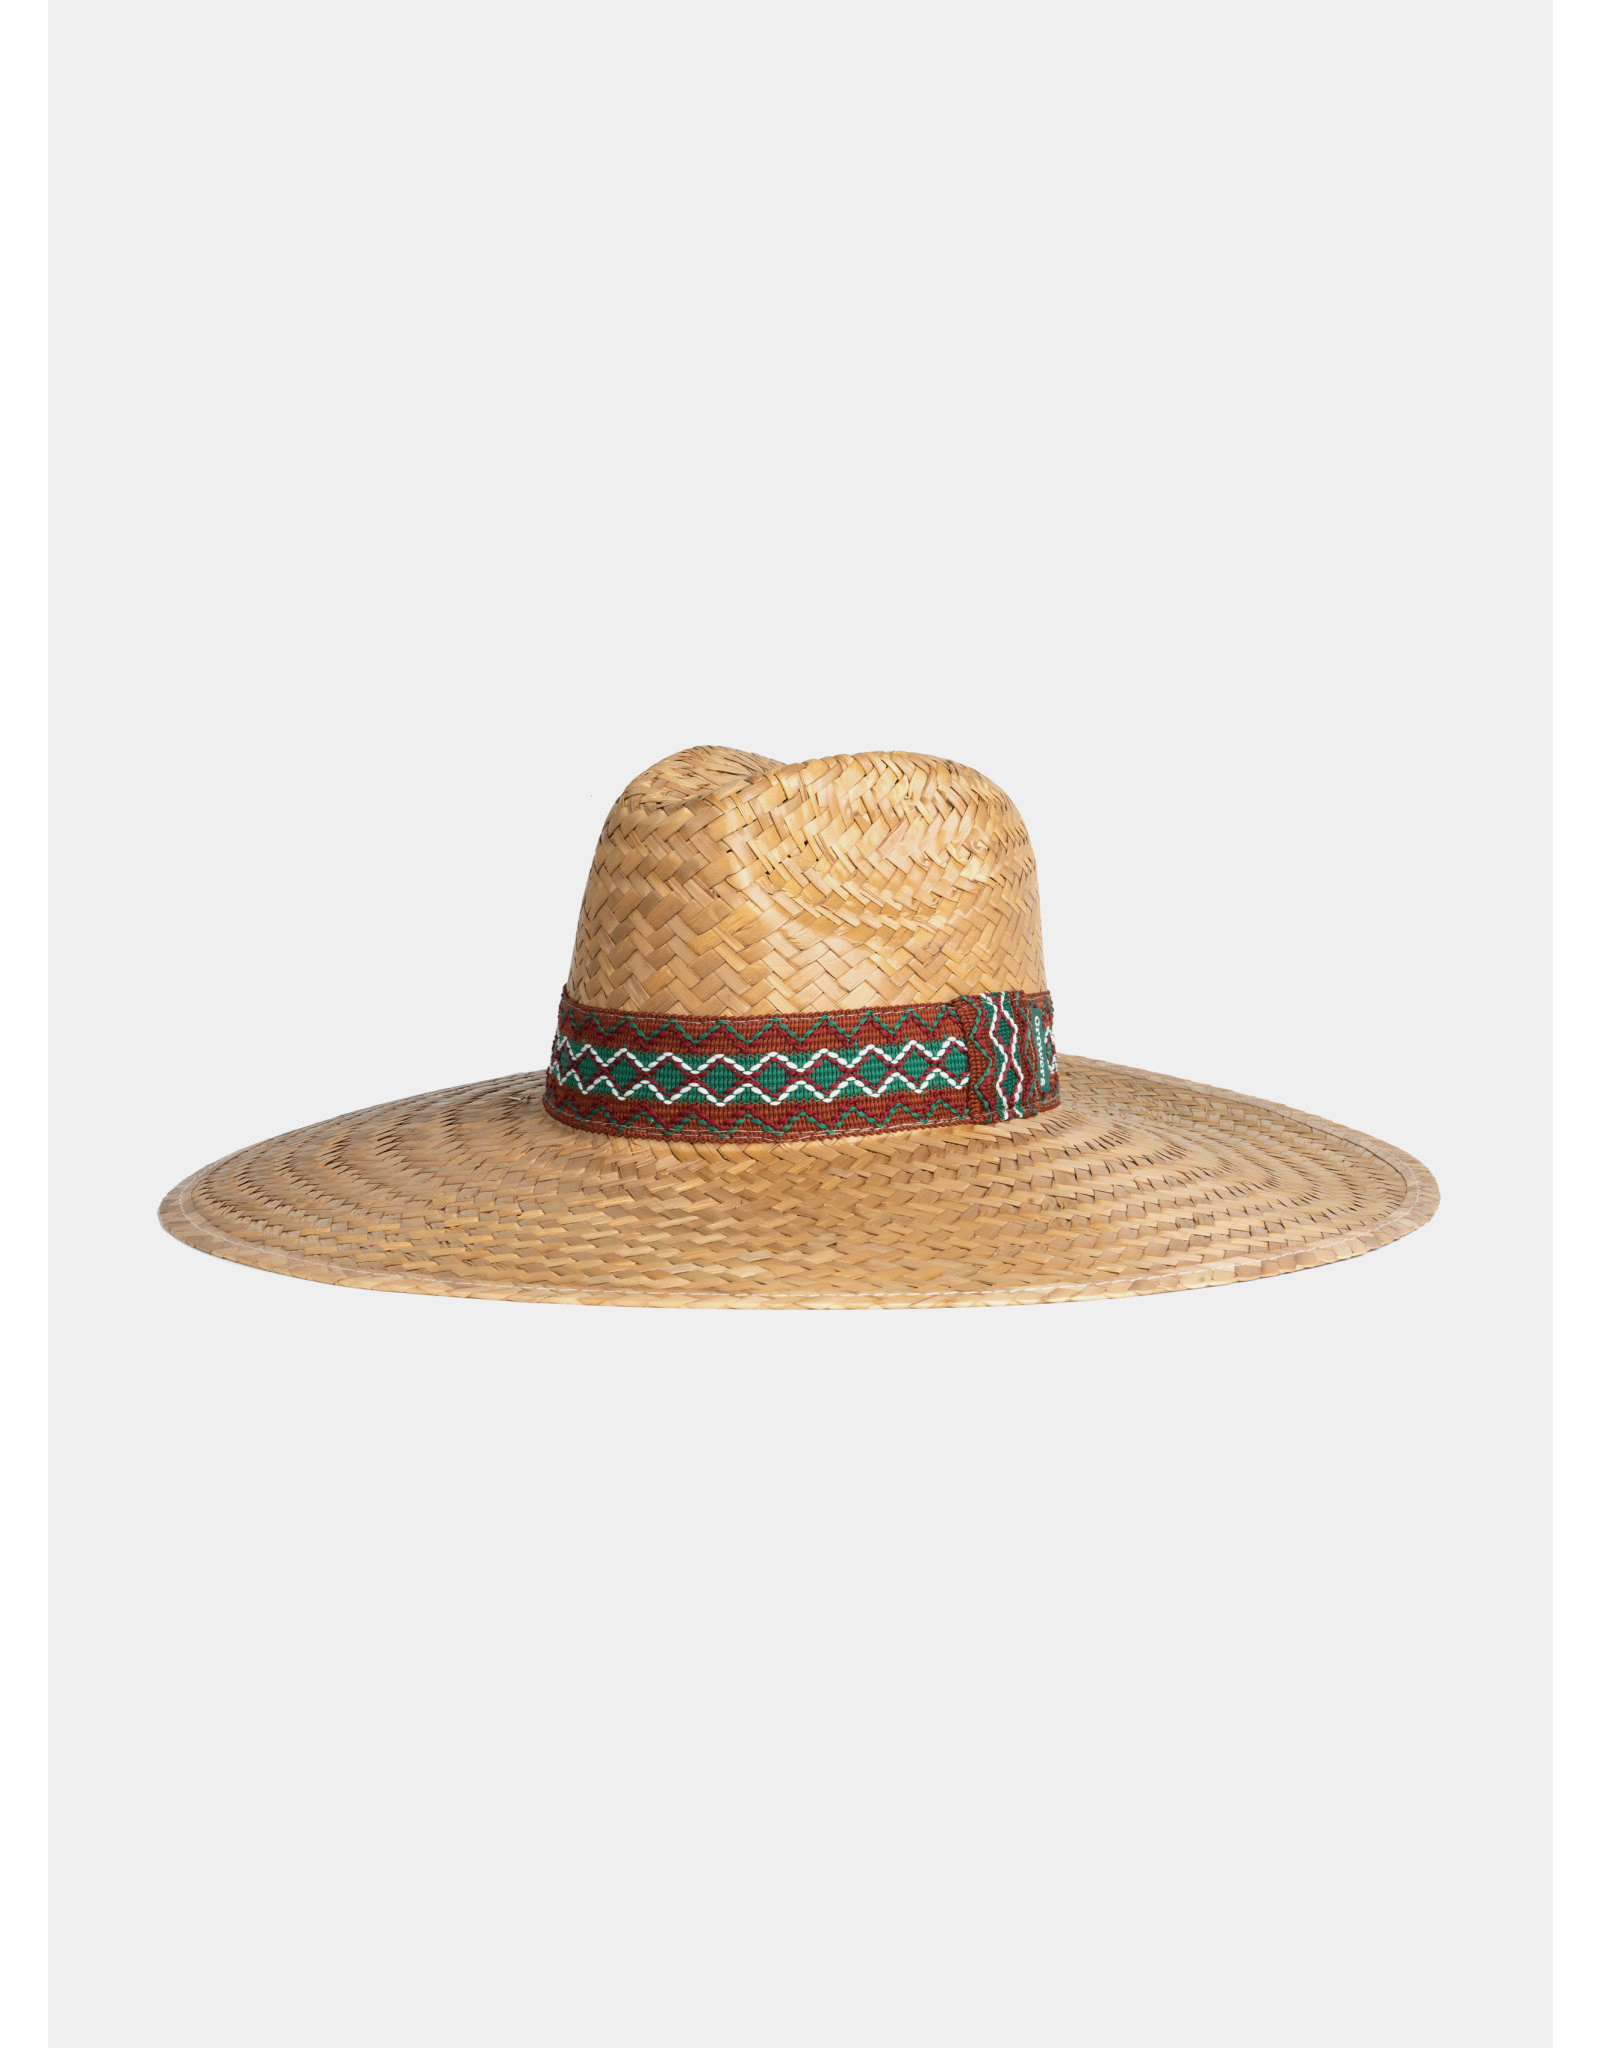 Growers&co Brandwine straw hat